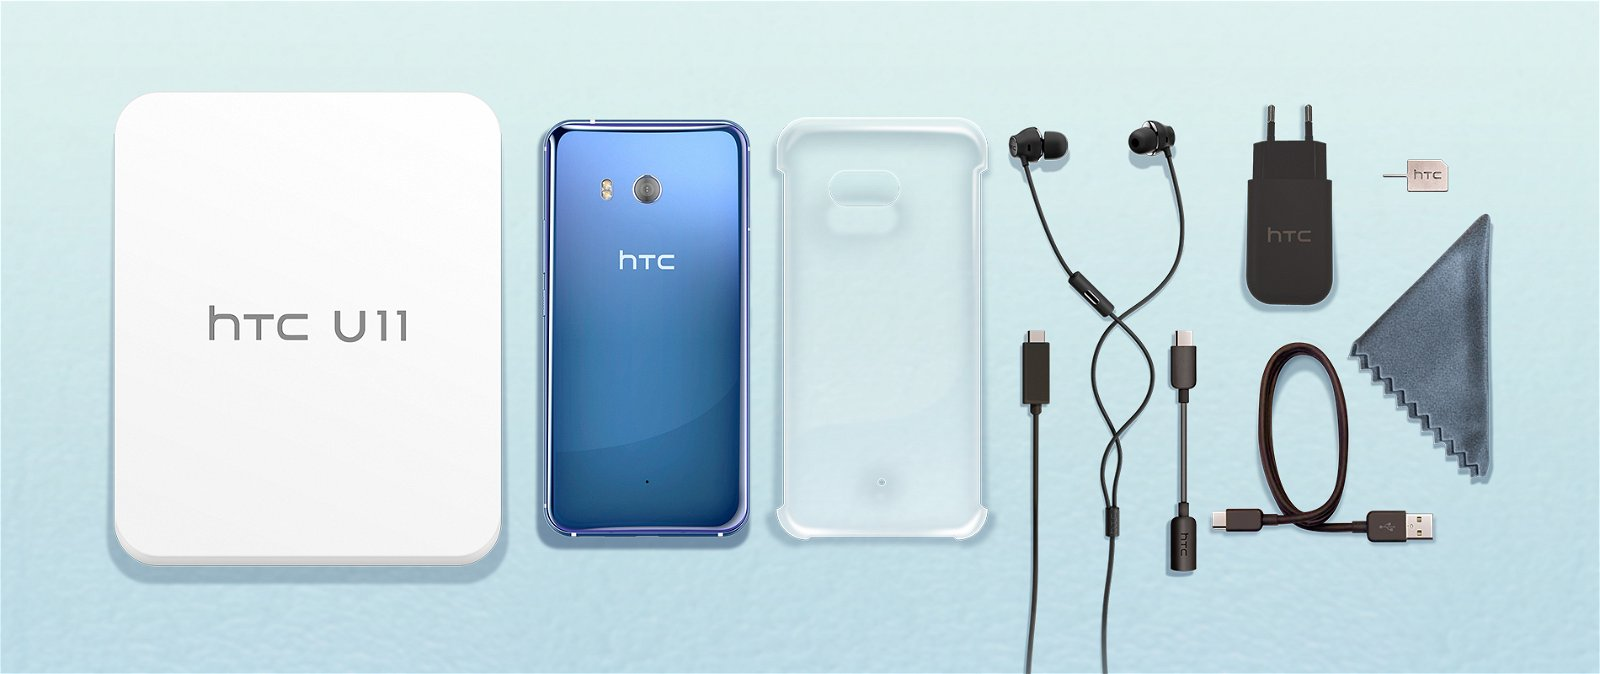 What the HTC Google Deal Means for Android 2